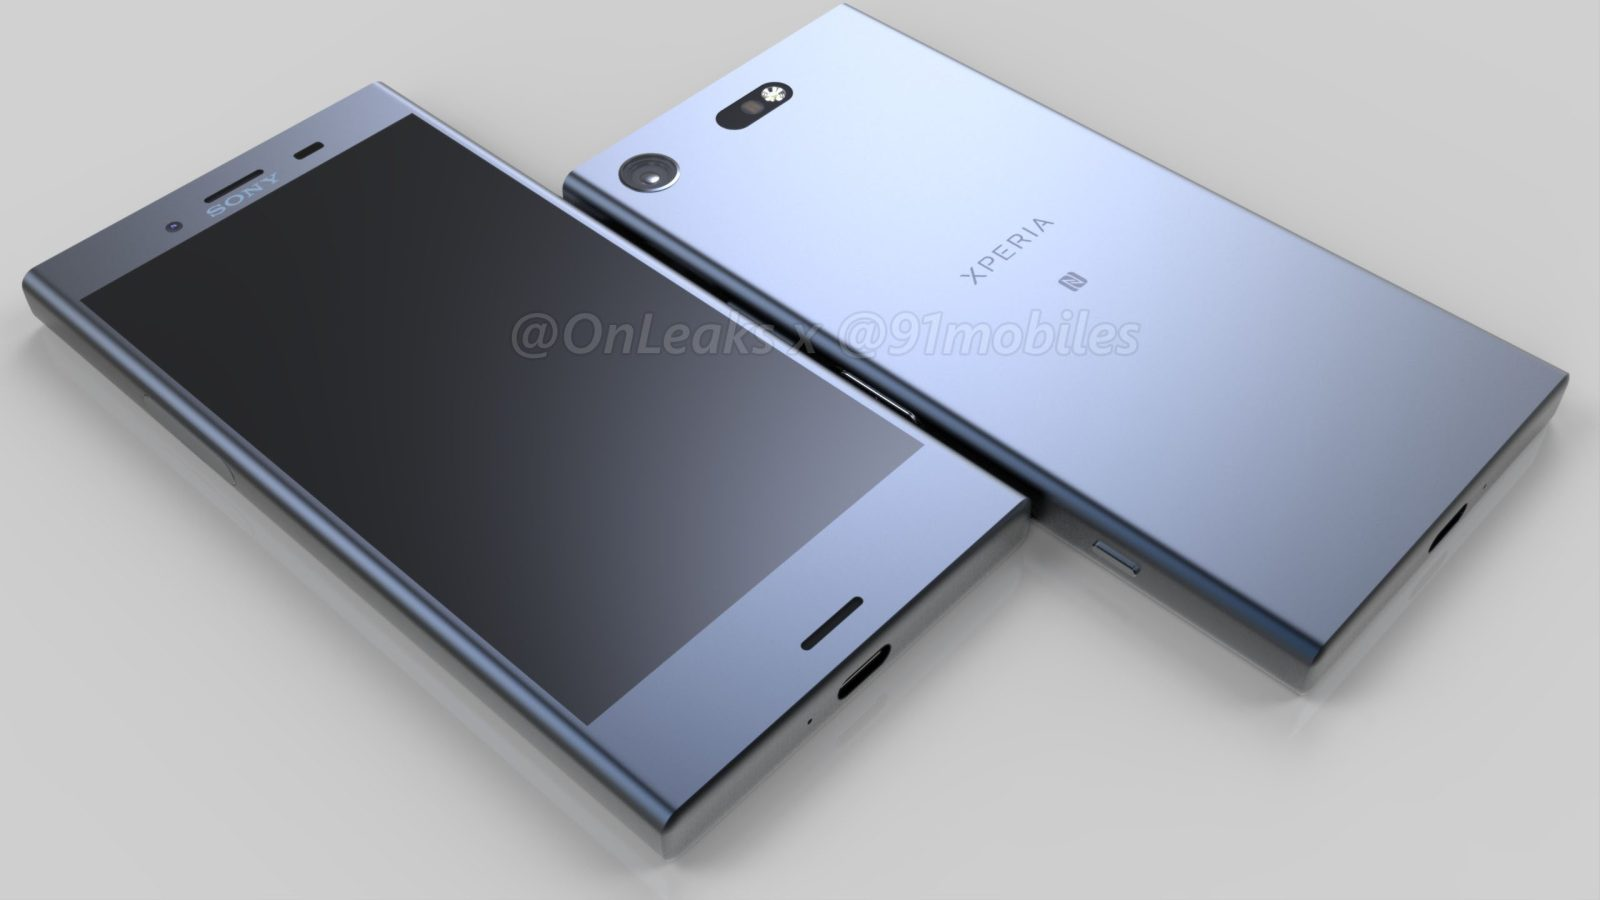 sony xperia xz1 compact device renders and specs reveal a powerful compact phone gallery. Black Bedroom Furniture Sets. Home Design Ideas